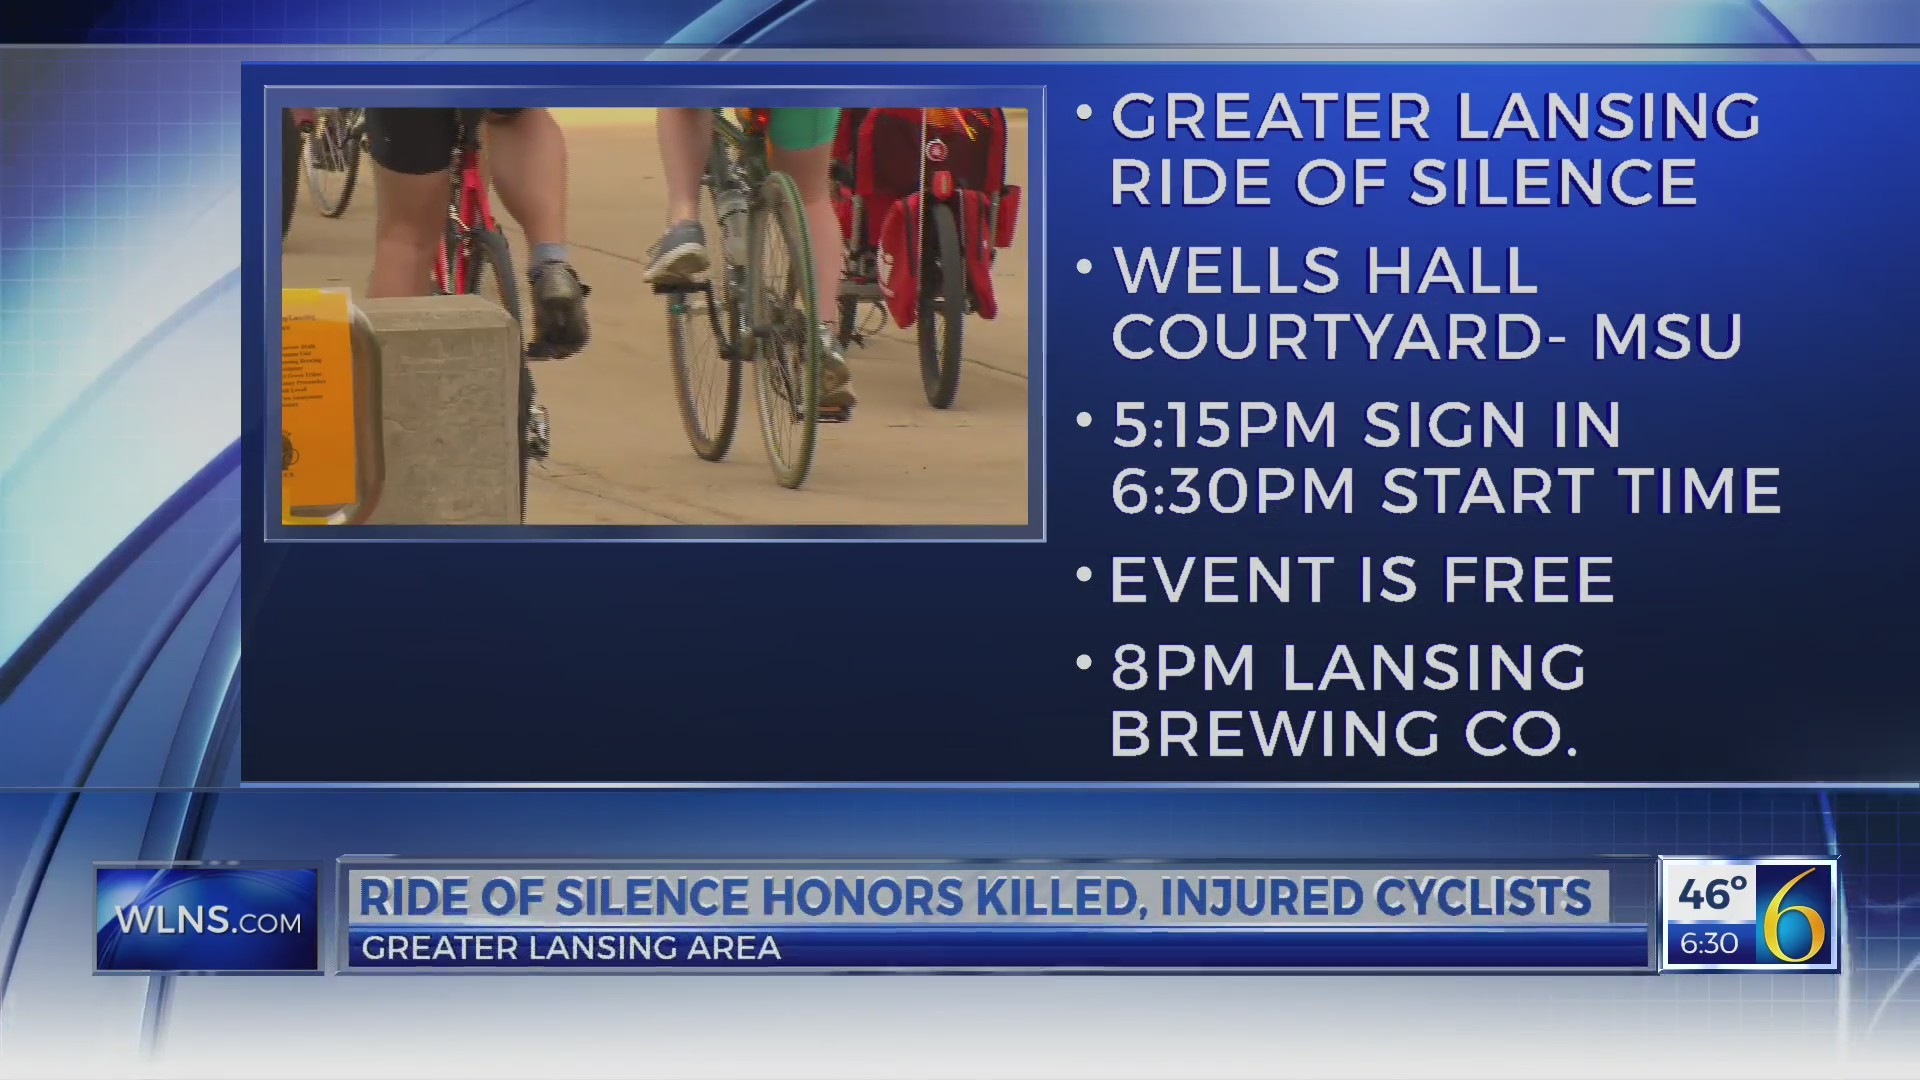 This Morning: ride of silence